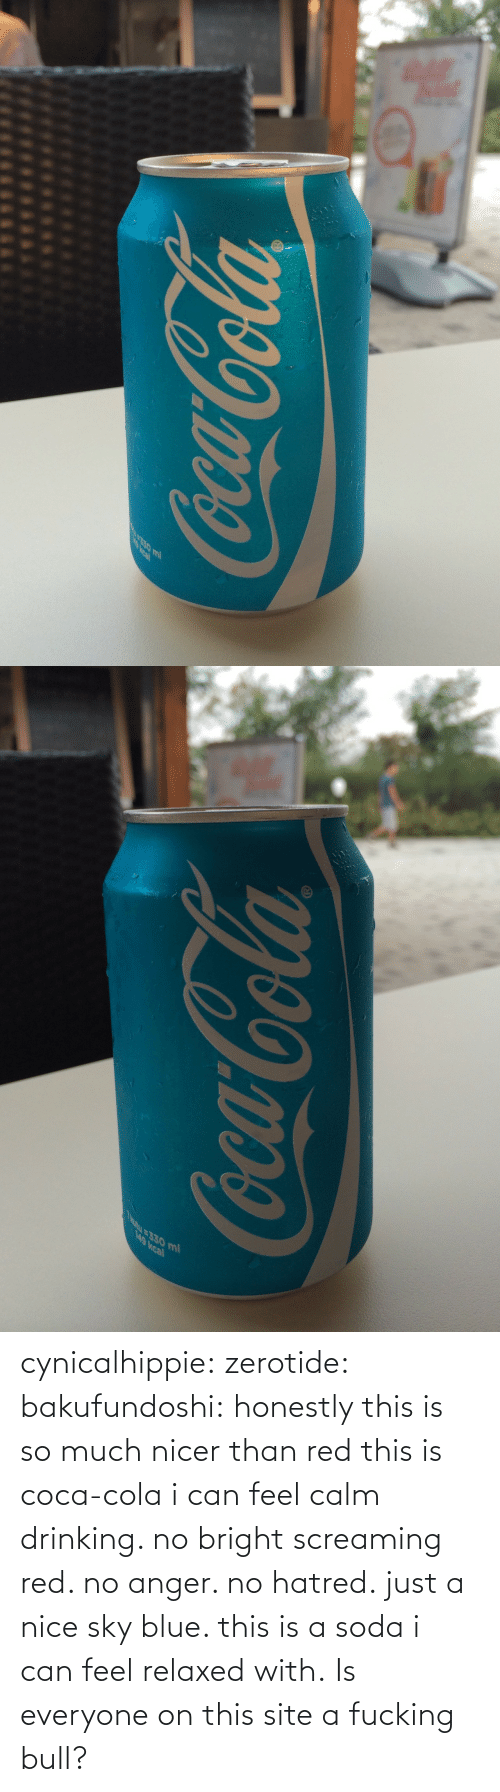 cola: cynicalhippie:  zerotide:  bakufundoshi:  honestly this is so much nicer than red  this is coca-cola i can feel calm drinking. no bright screaming red. no anger. no hatred. just a nice sky blue. this is a soda i can feel relaxed with.   Is everyone on this site a fucking bull?